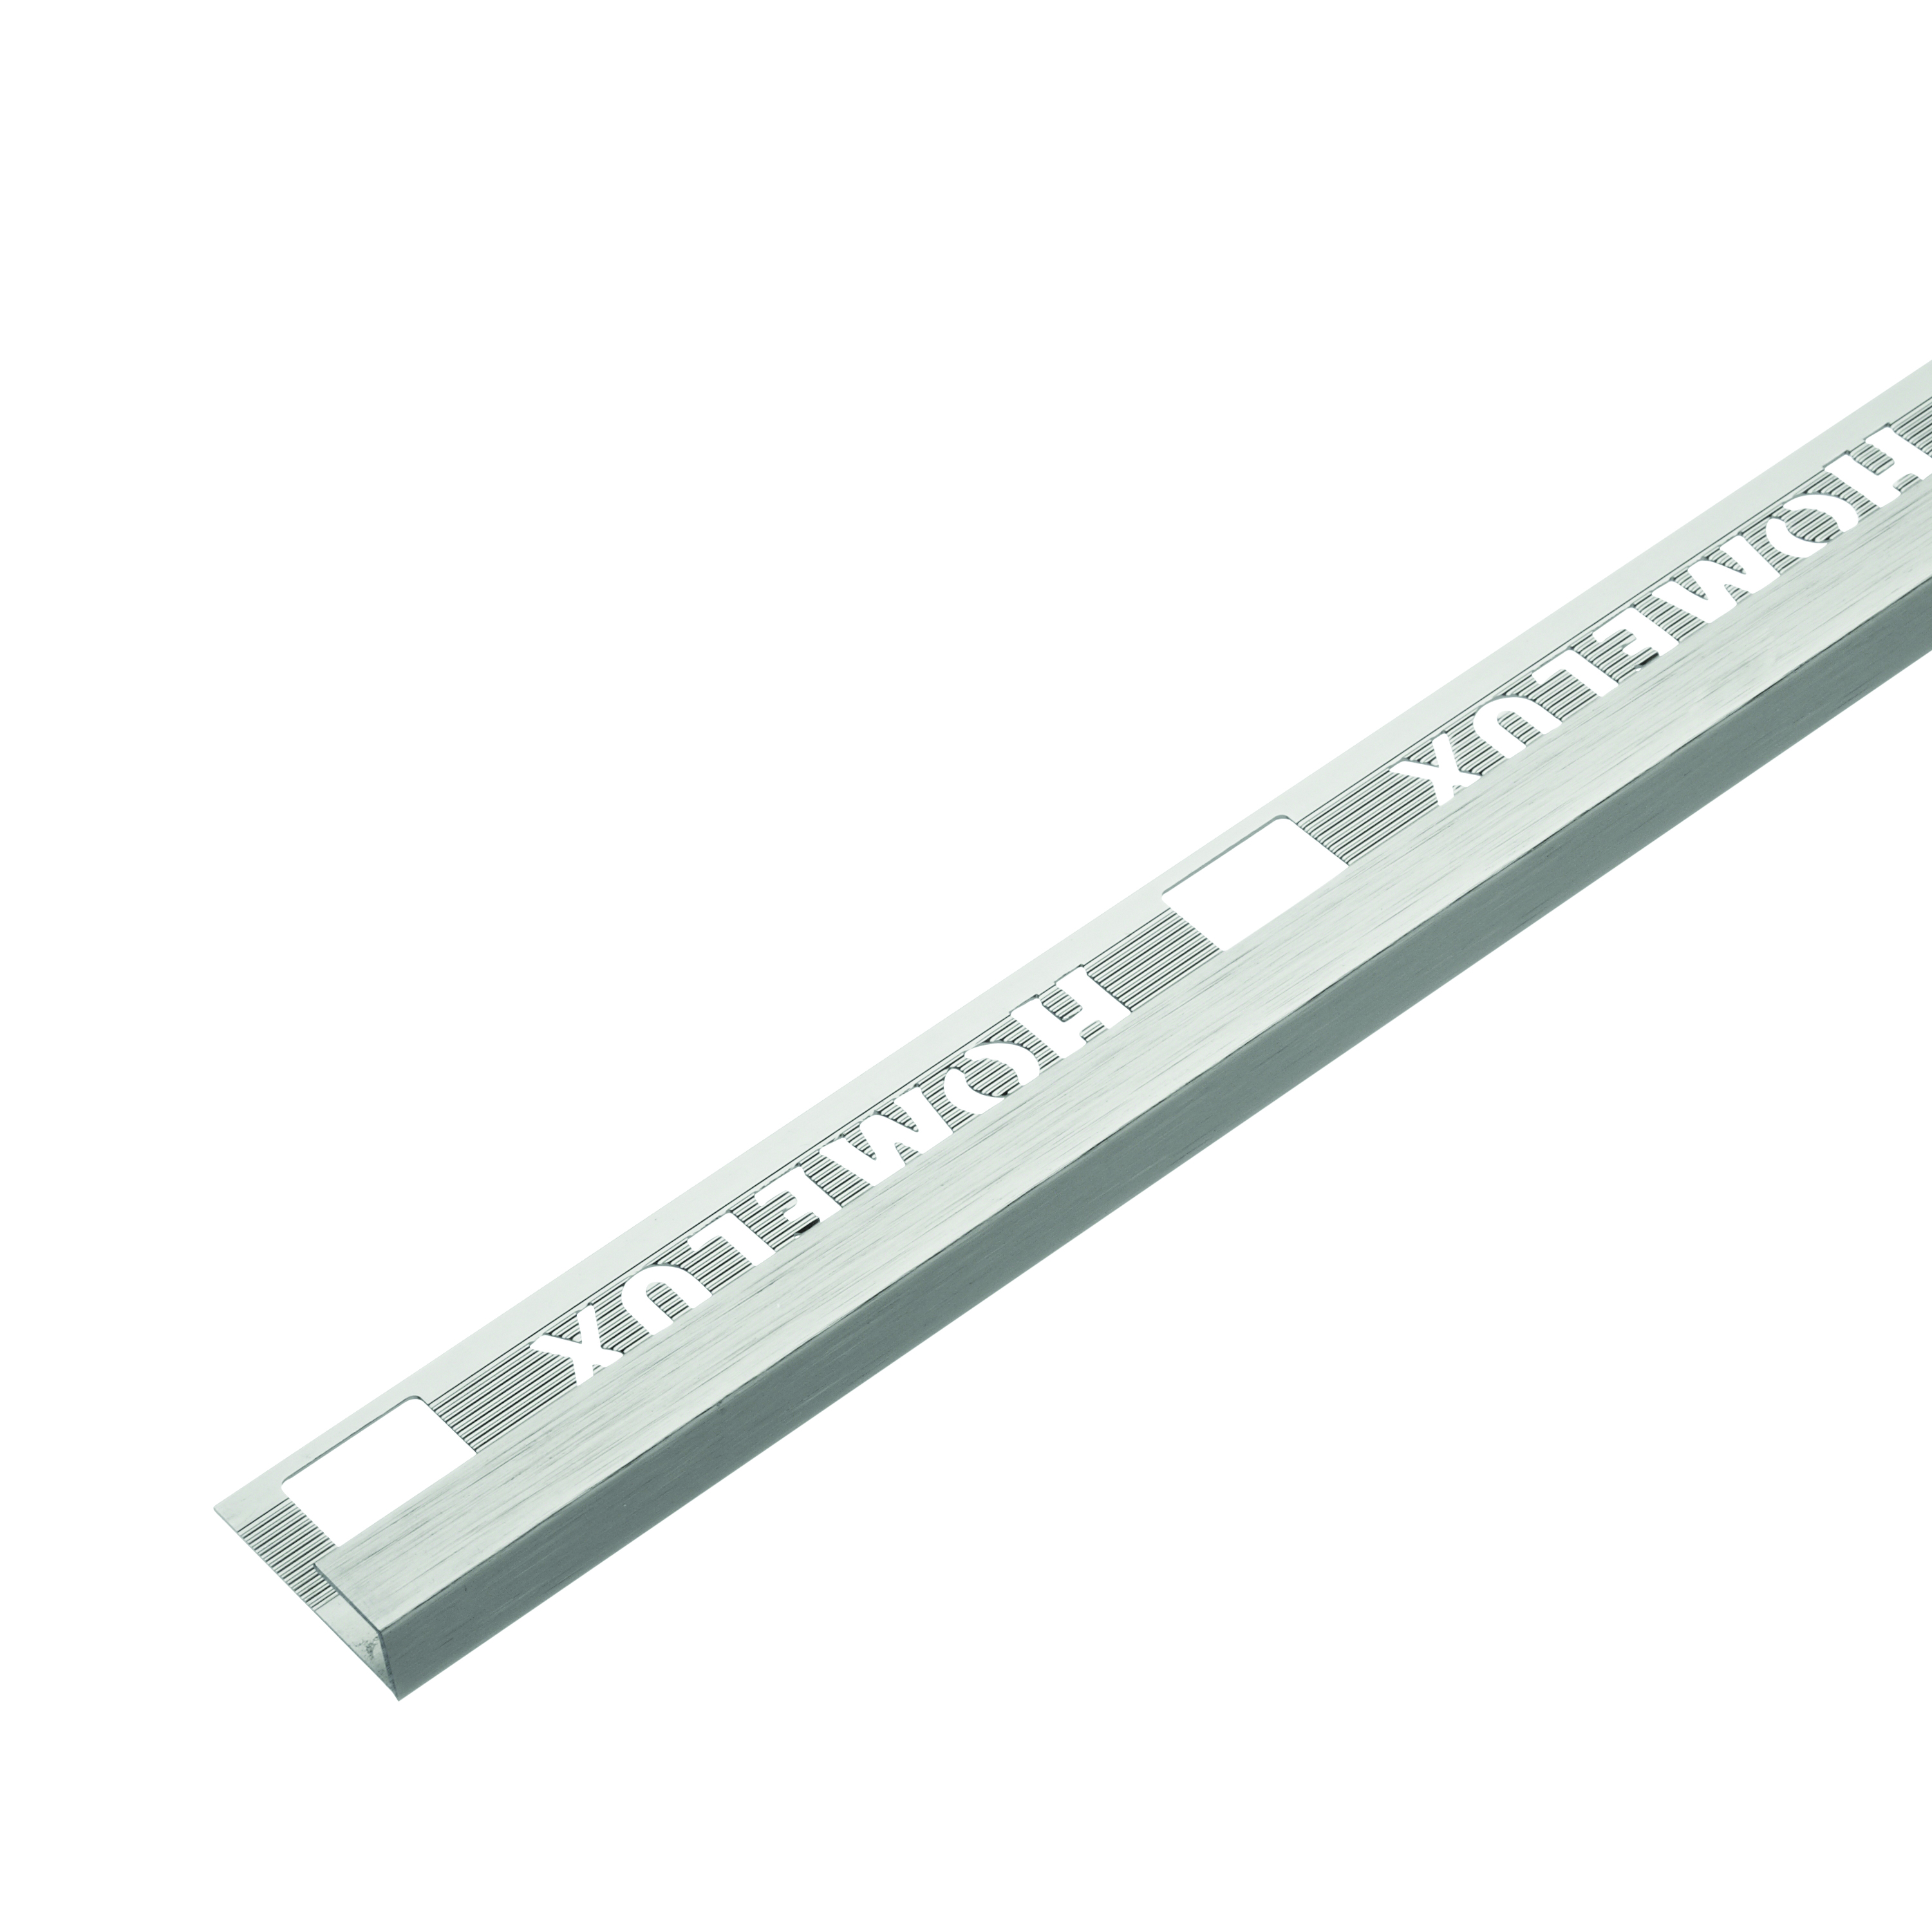 12.5mm Stainless Steel Effect Metal Square Edge 2.5m